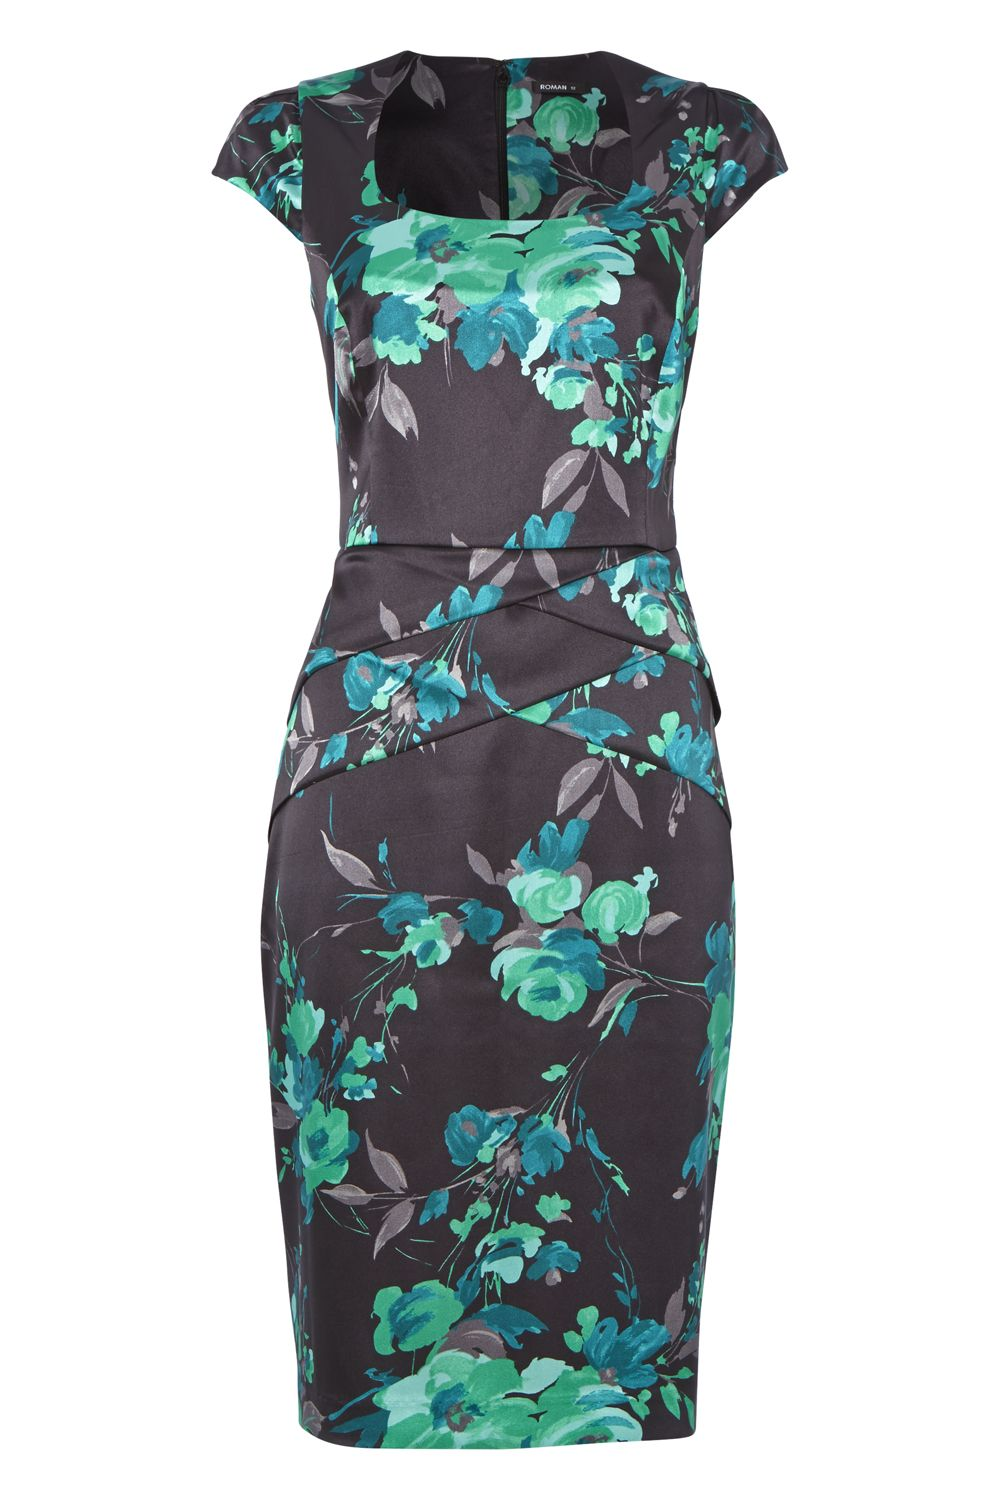 Roman Originals Floral Satin Dress, Green